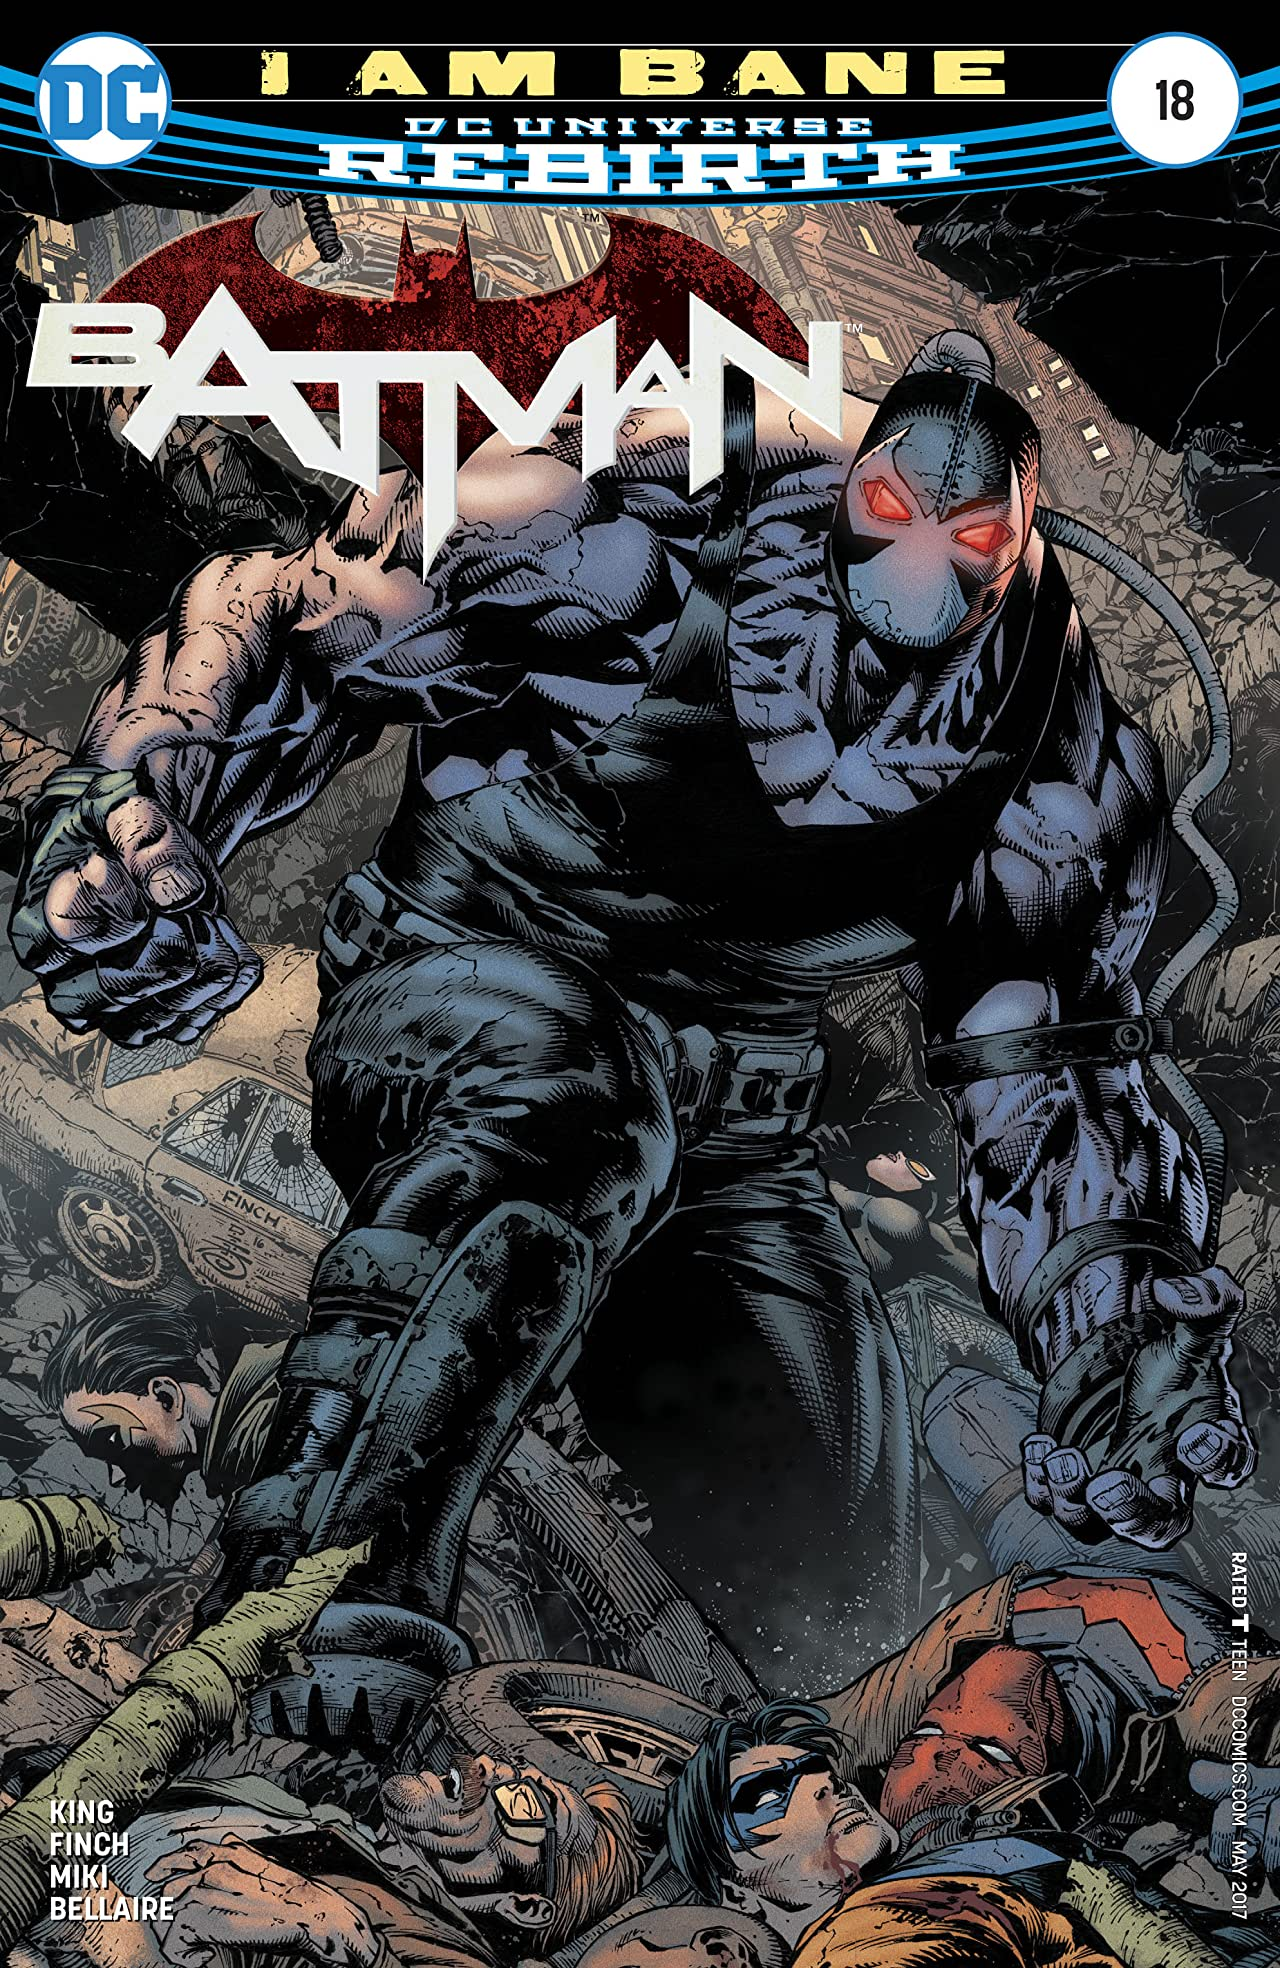 Batman #18 Review